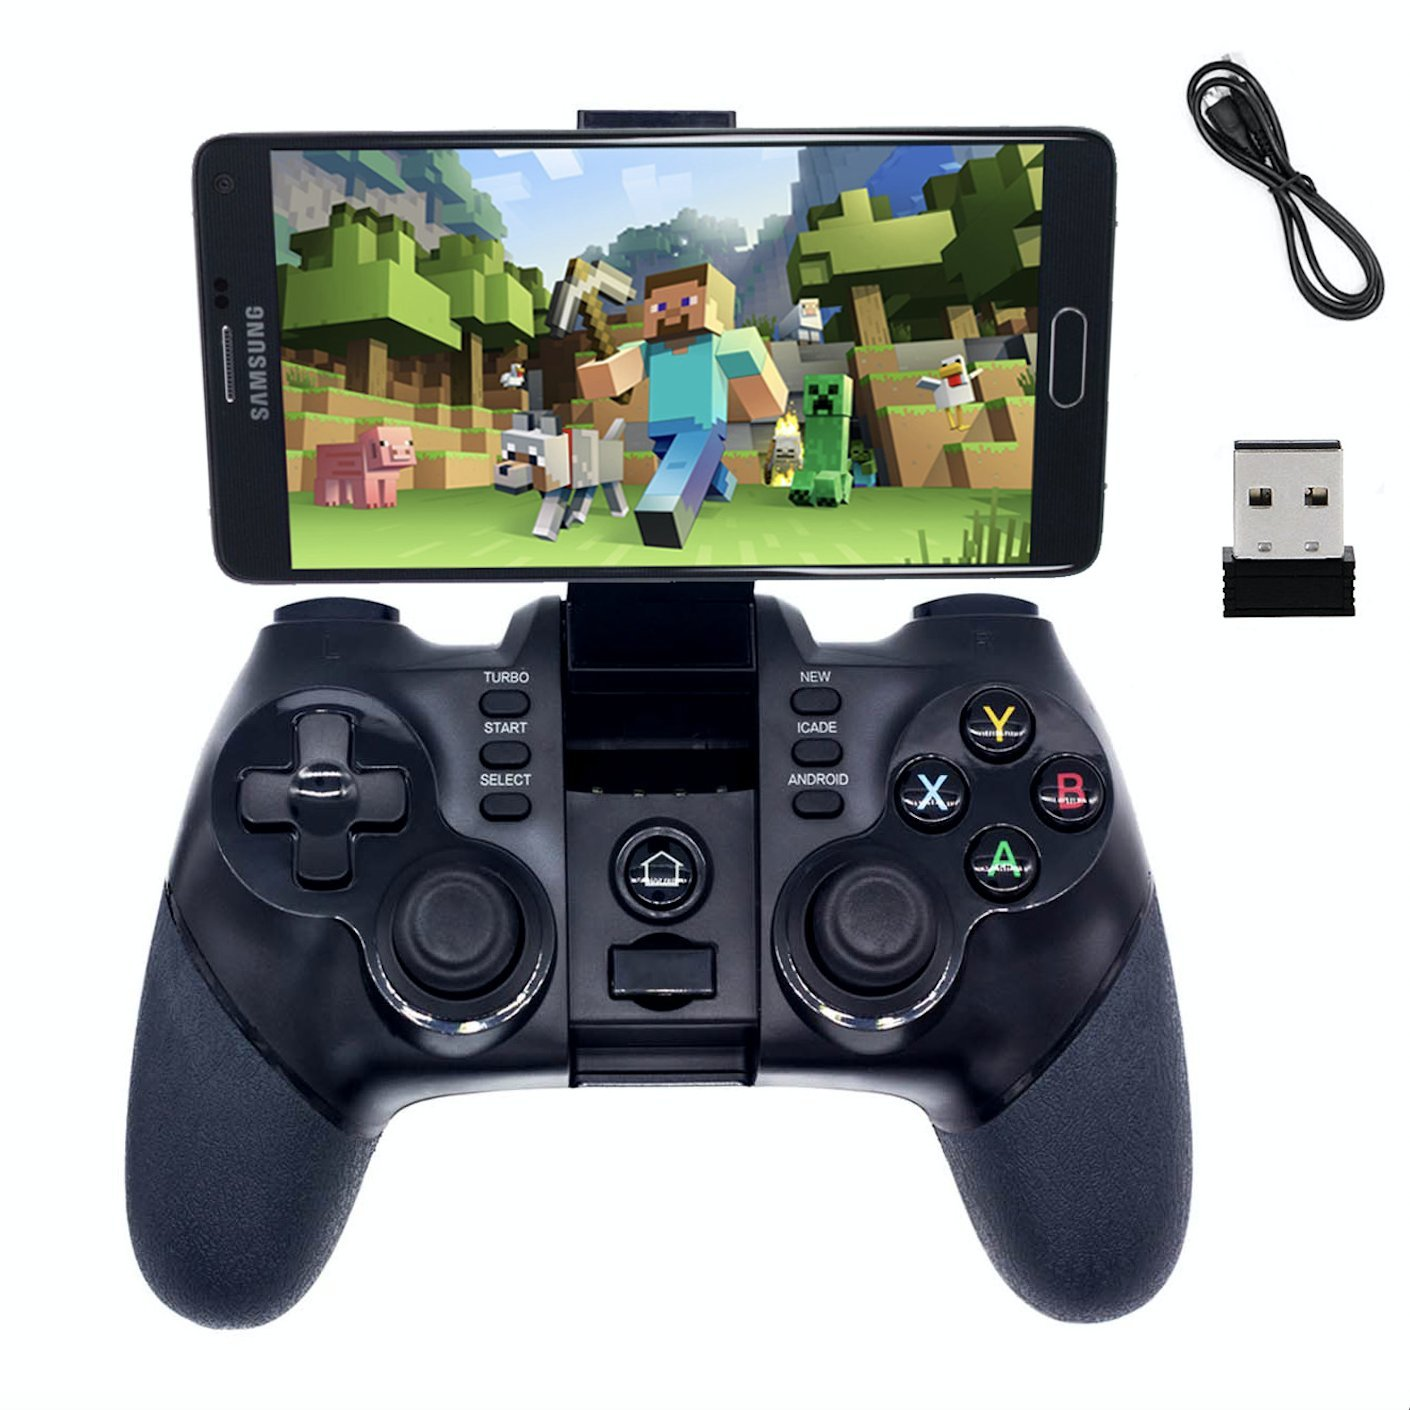 BRH 2.4G Wireless Bluetooth Game Controller Gamepad for Android Smartphone, PS3, Tablet, PC Windows 7/8/10, Gear VR, TV Box, Fire TV - Black by BRH